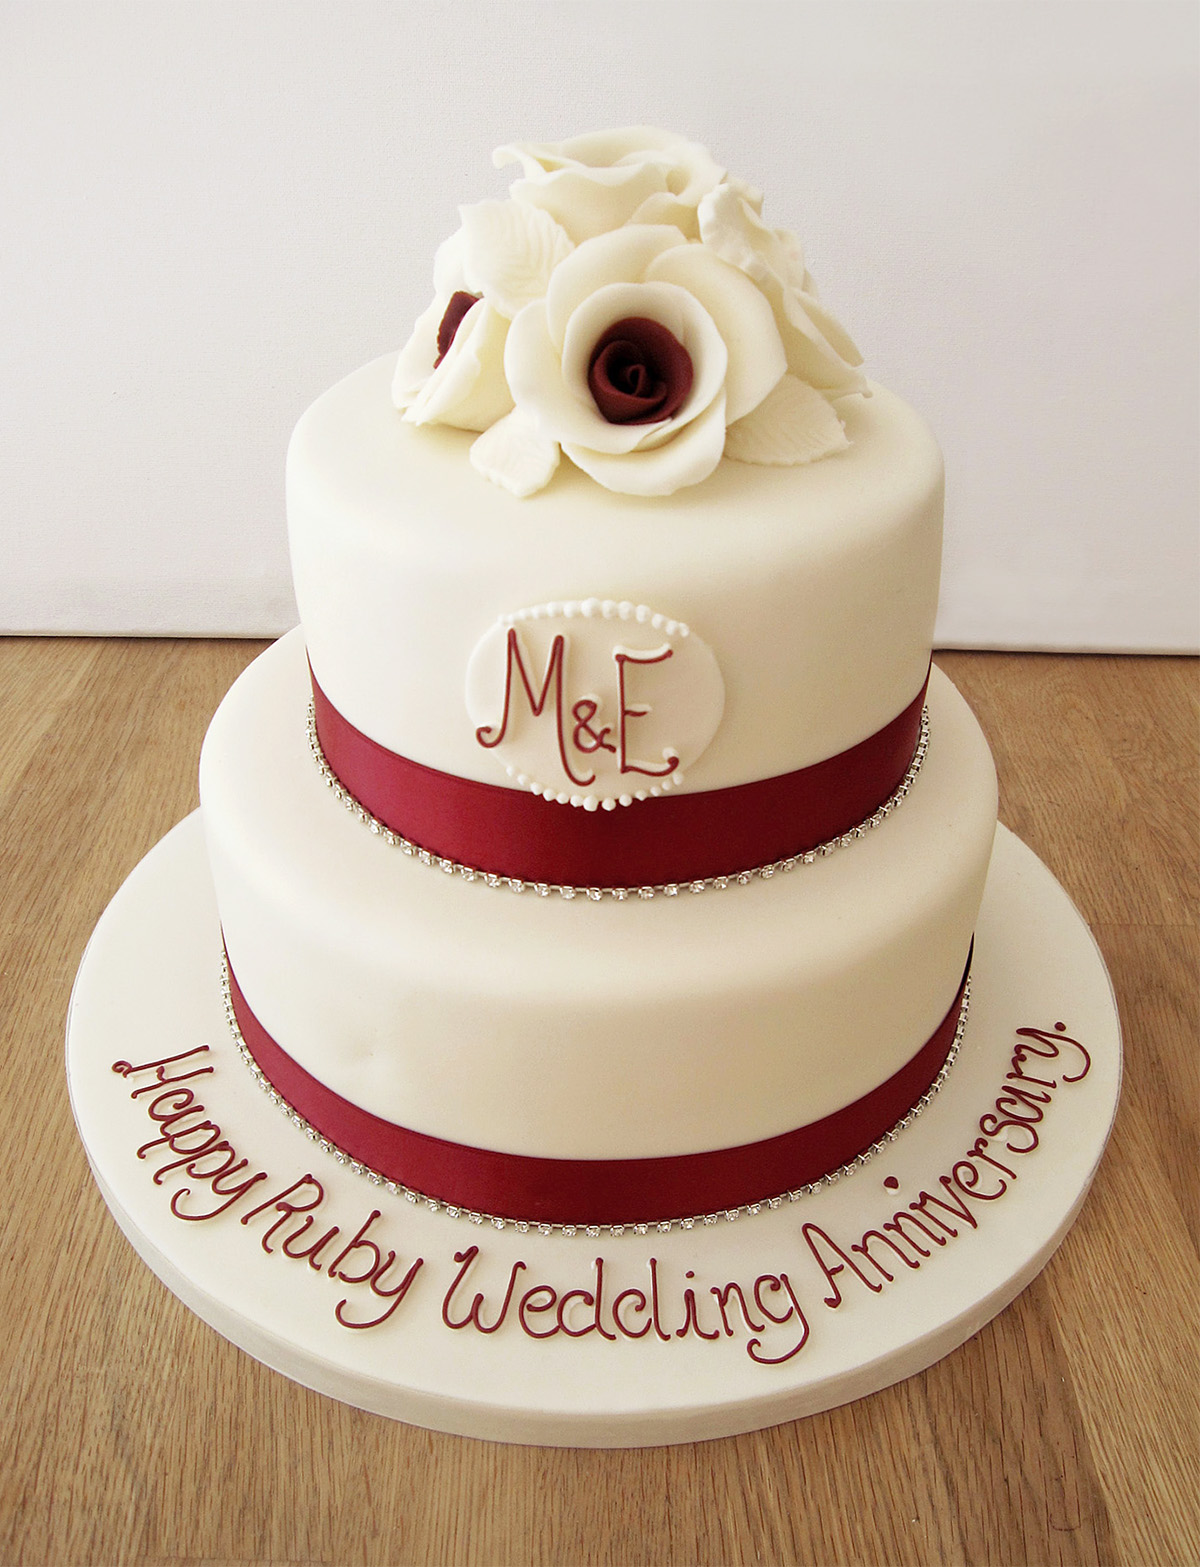 Cake Decorating Ideas For Ruby Wedding : Anniversary Cakes Archives - The Cakery Leamington Spa